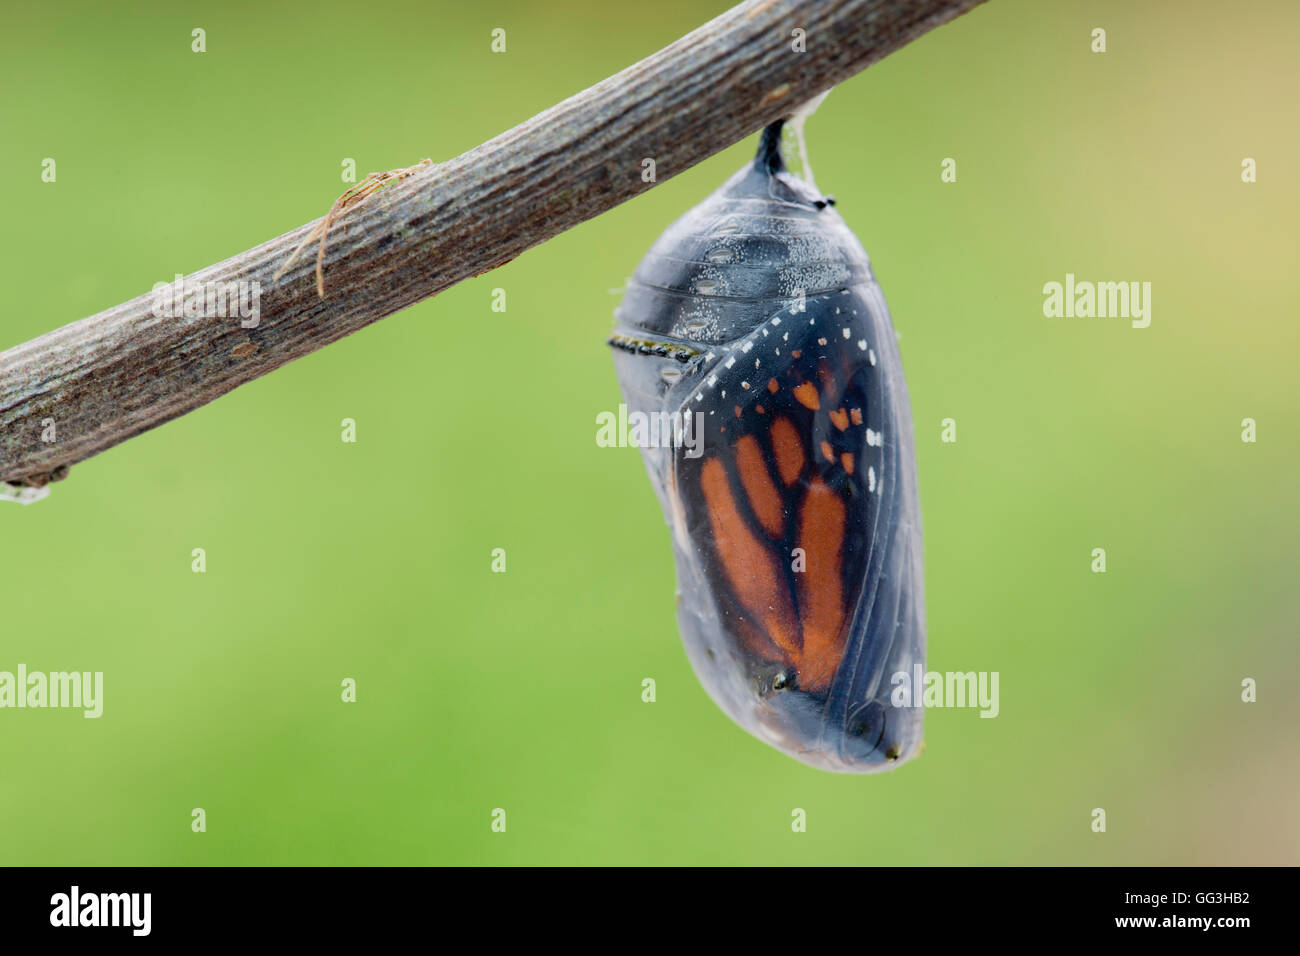 Monarch Butterfly Pupa; Danaus plexippus UK - Stock Image